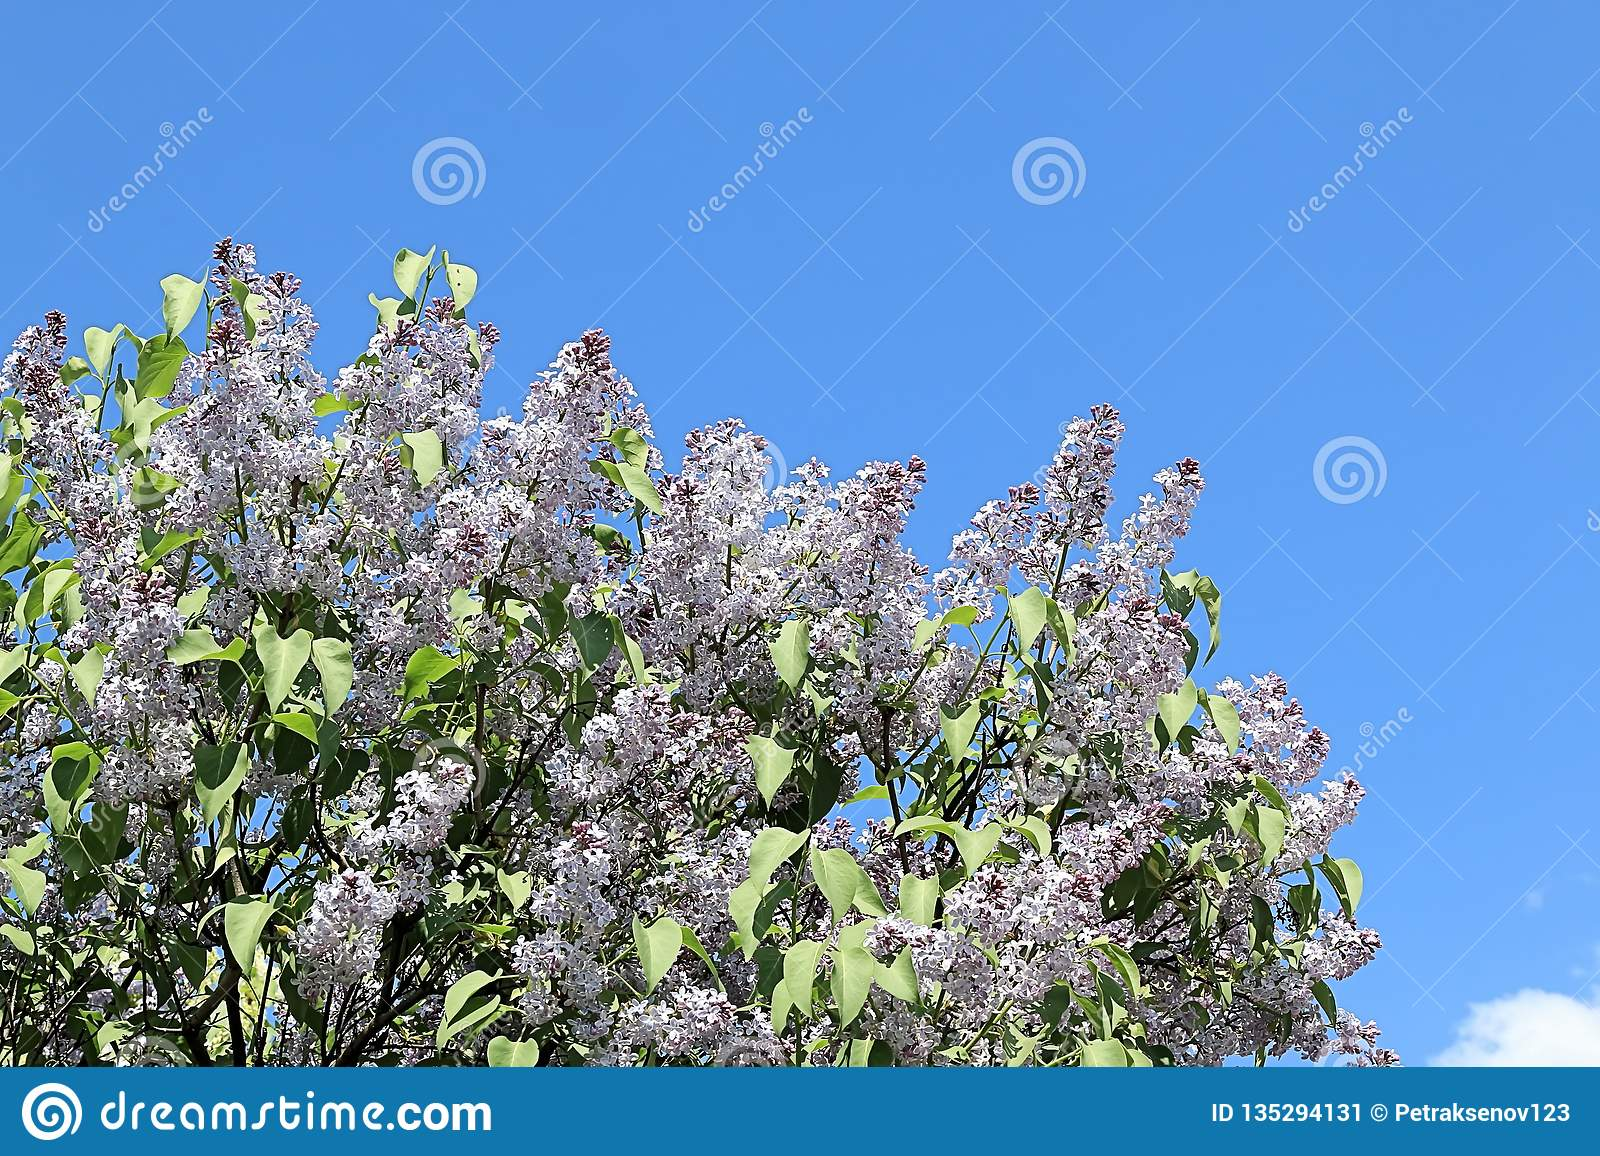 Friendly, beautiful and cheerful spring lilac striving for a brighter future